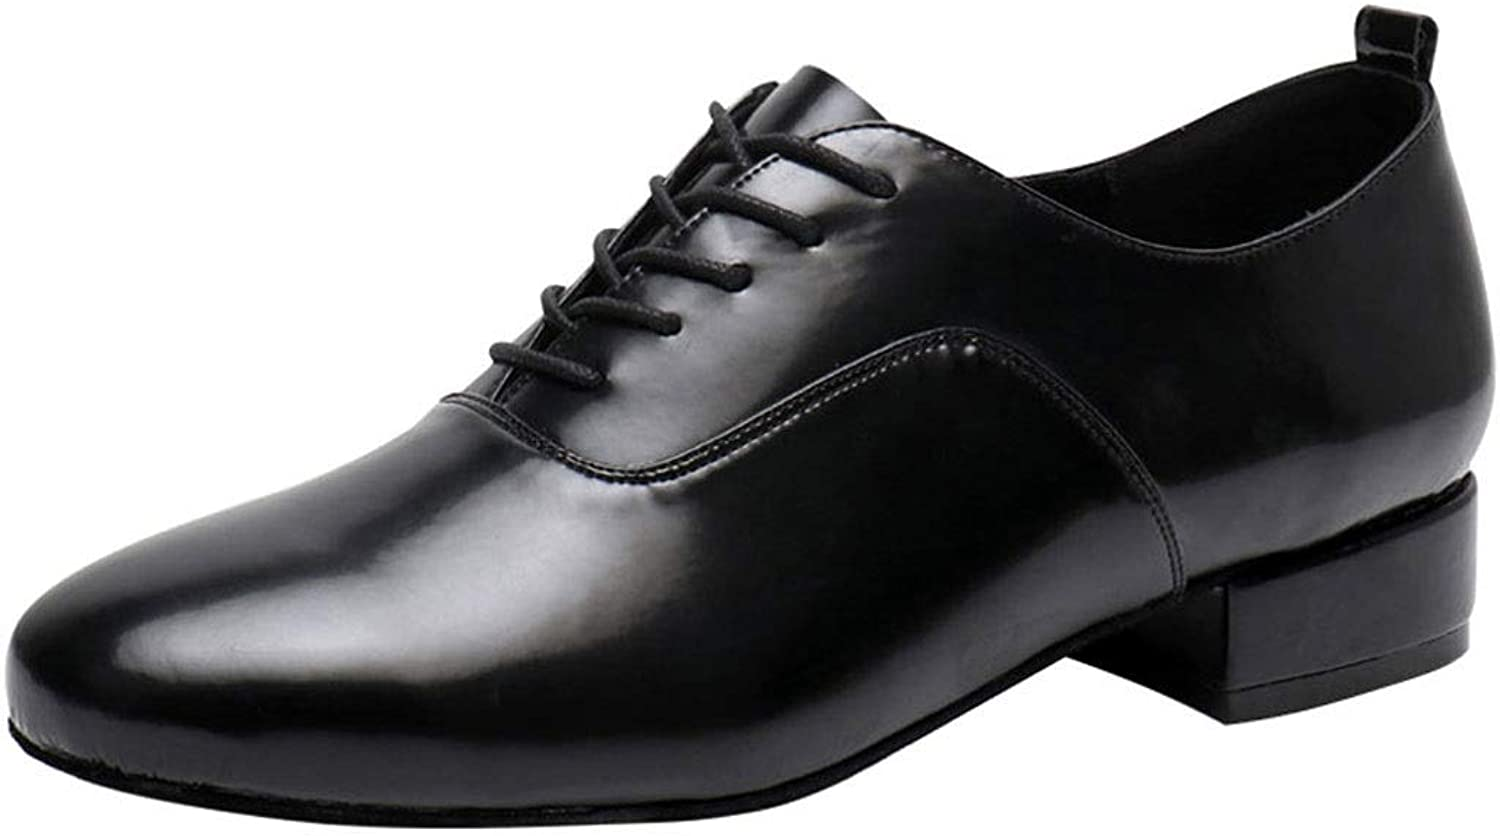 Men's Oxfords Perforated Lace Up Dress shoes Black Men's Classic Lace-up Leather Dance shoes Modern Dancing shoes Heel 3.5cm (color   Suede sole, Size   38)